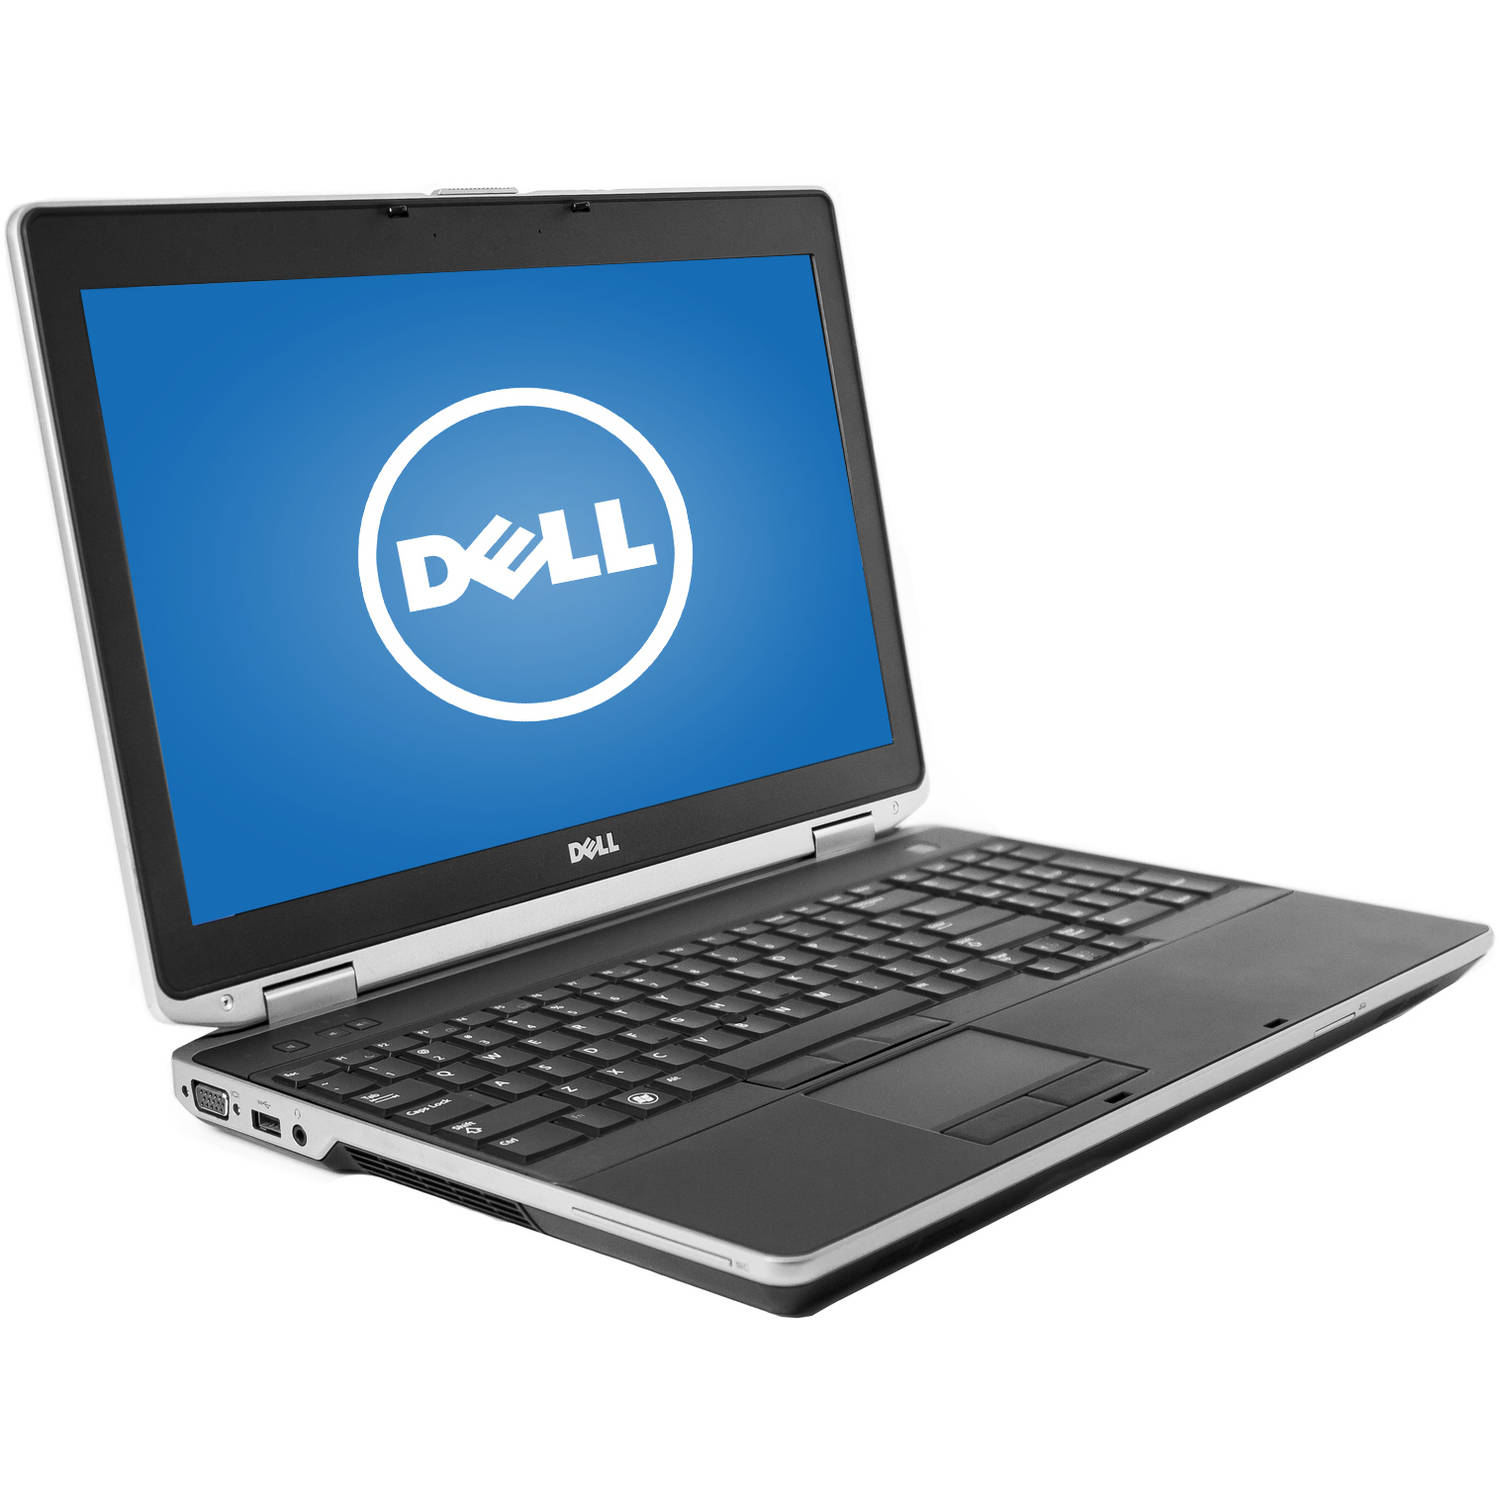 "Refurbished Dell 15.6"" Latitude E6530 Laptop PC with Intel Core i5-3210M Processor, 4GB Memory, 320GB Hard Drive and Windows 10 Pro"